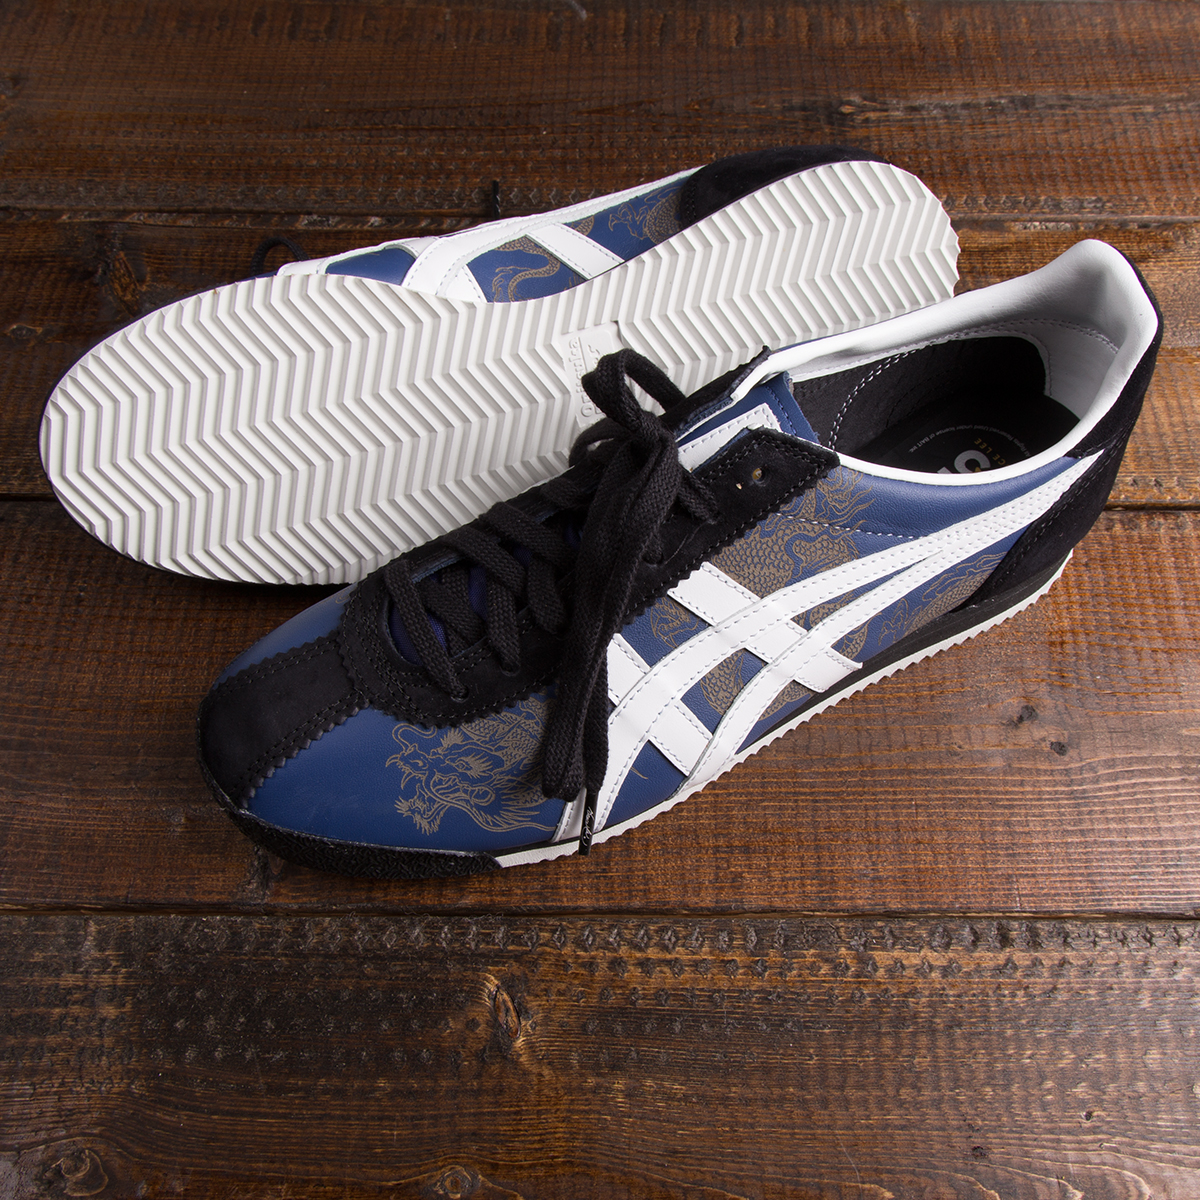 Onitsuka Tiger Bruce Lee Kicks Pinterest Foundation, Bruce lee